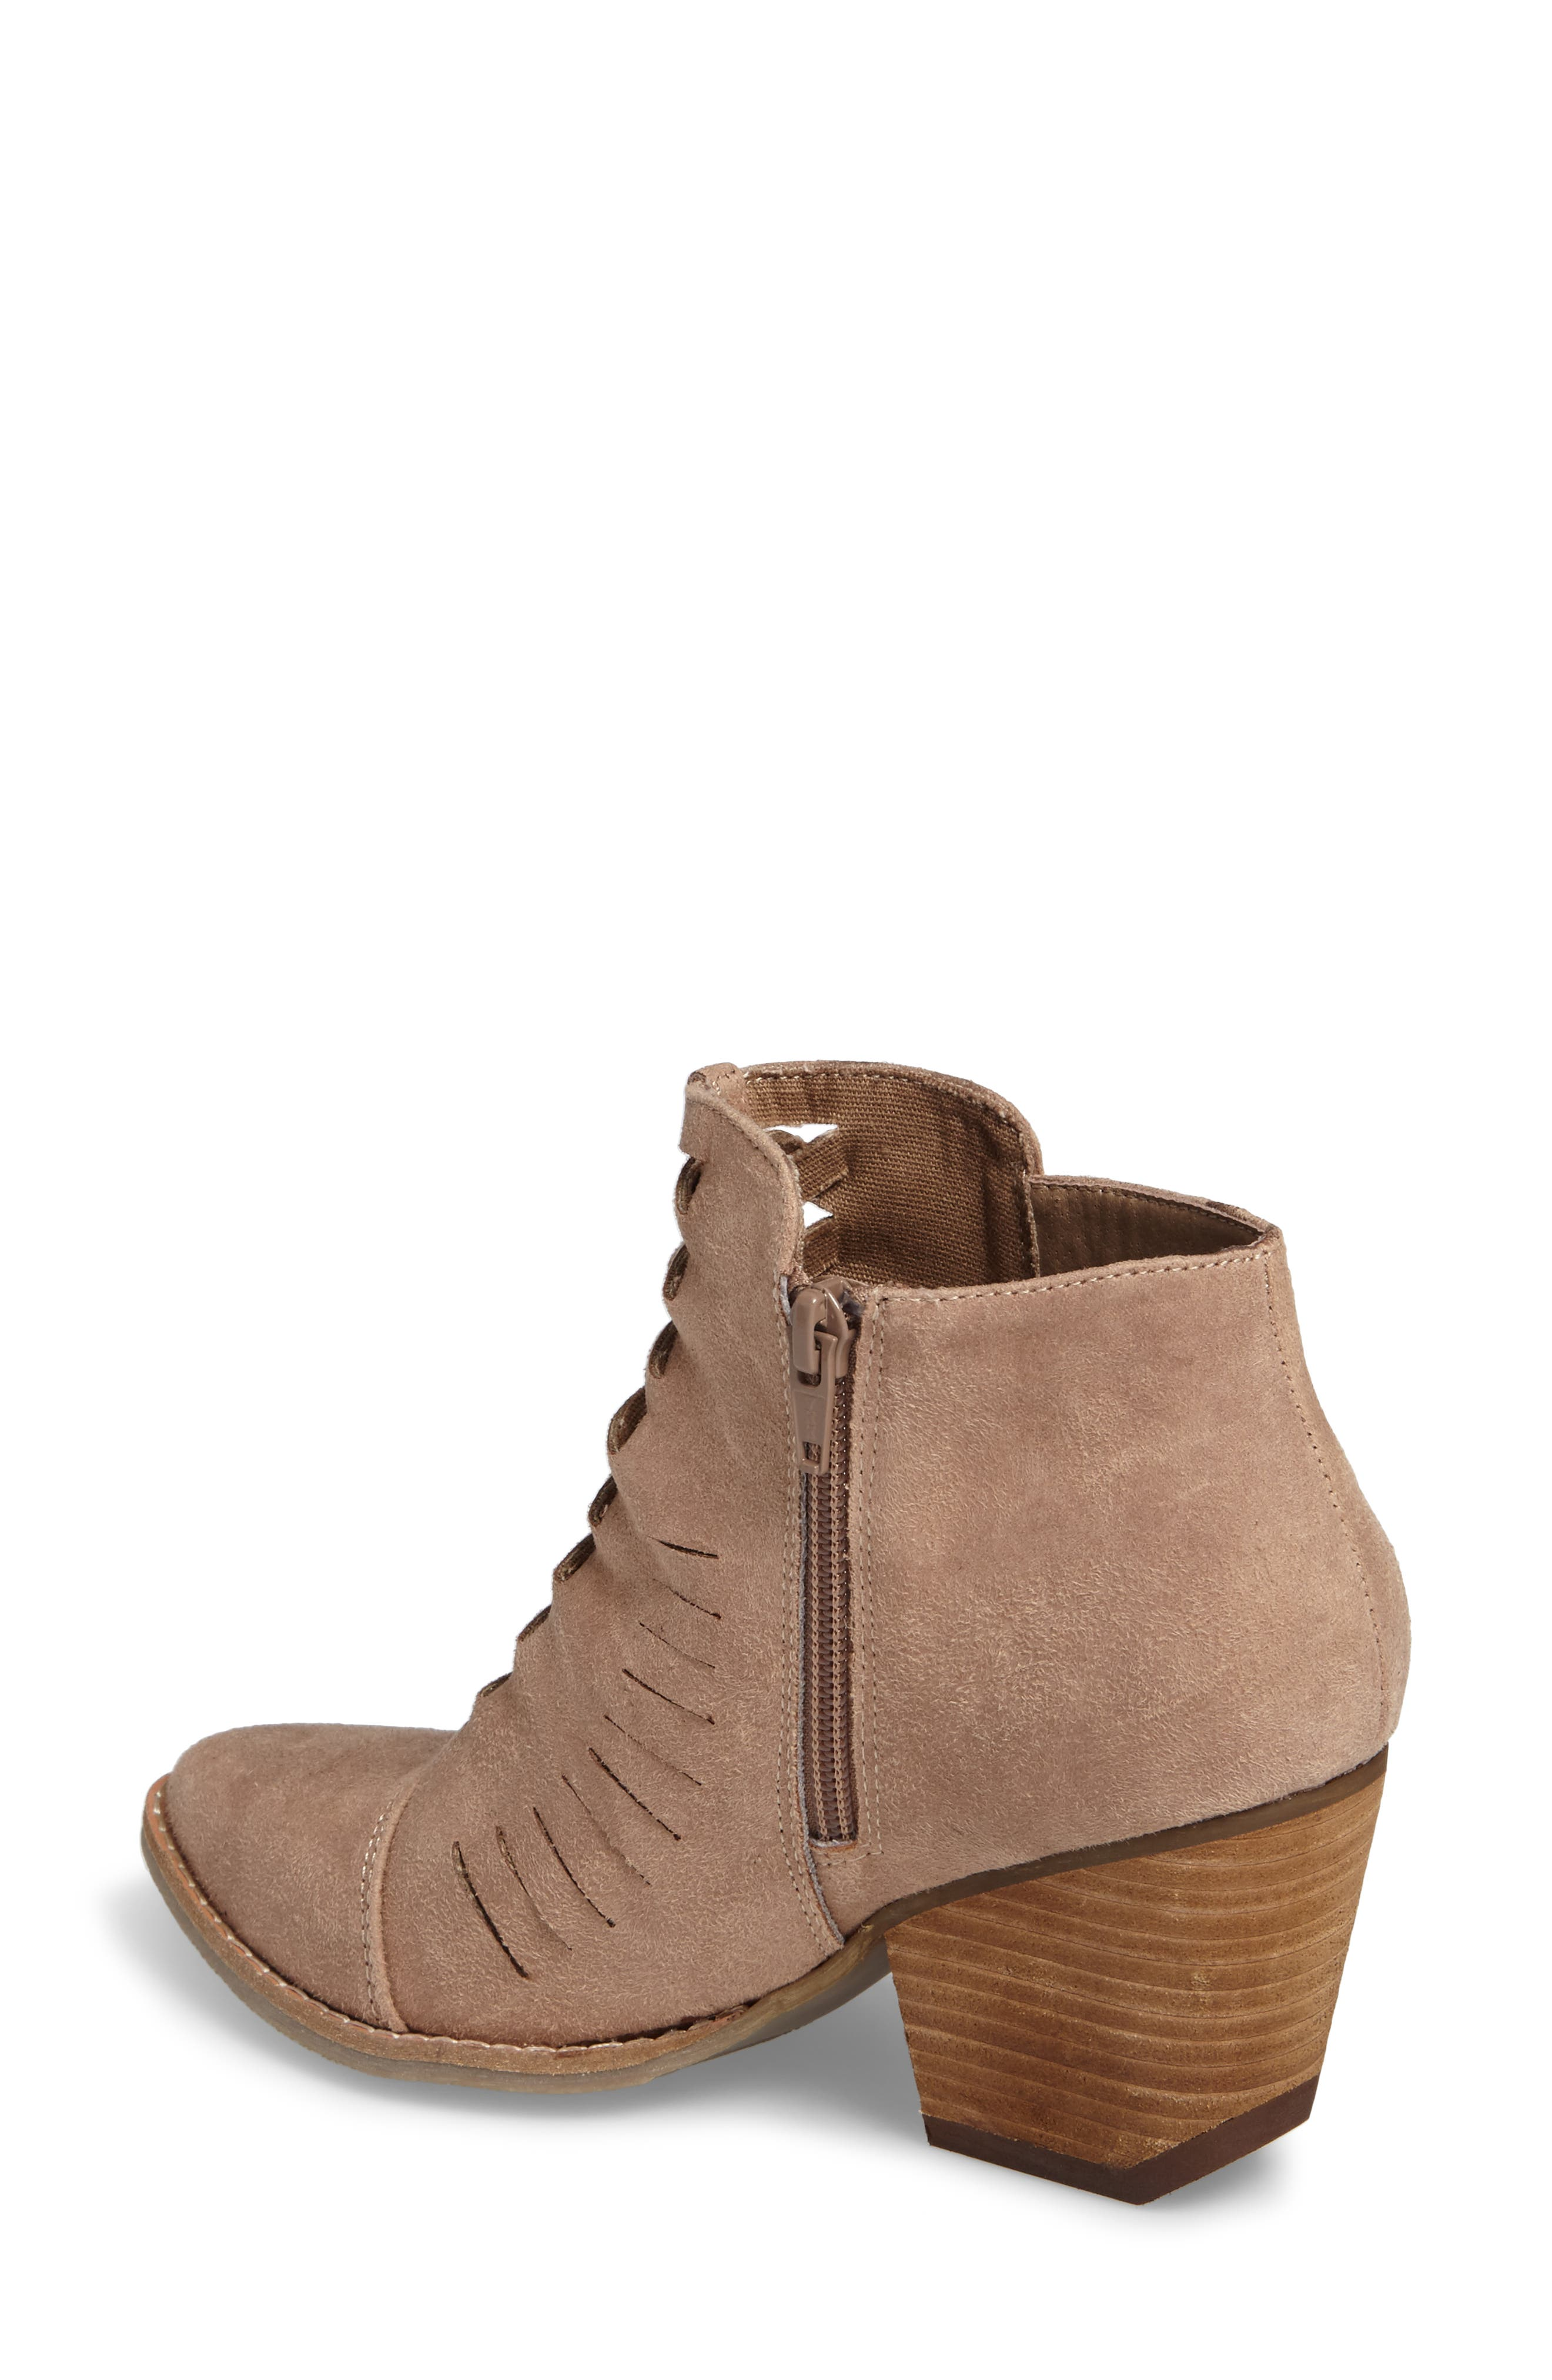 Ally Woven Bootie,                             Alternate thumbnail 4, color,